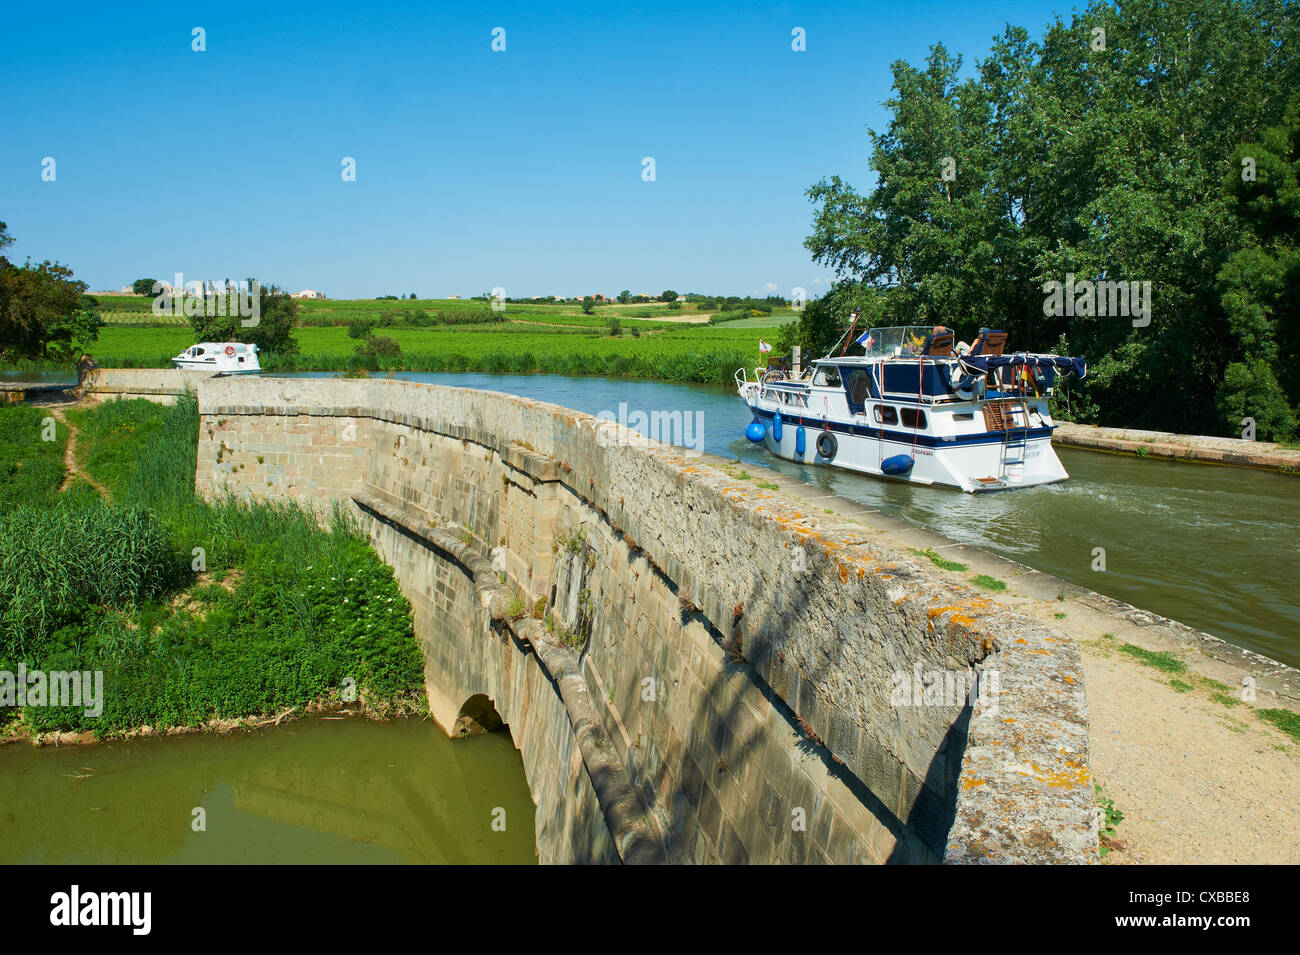 Navigation on the Canal du Midi, the first aqueduct built on the Canal du Midi, Paraza, Aude, Languedoc Roussillon - Stock Image